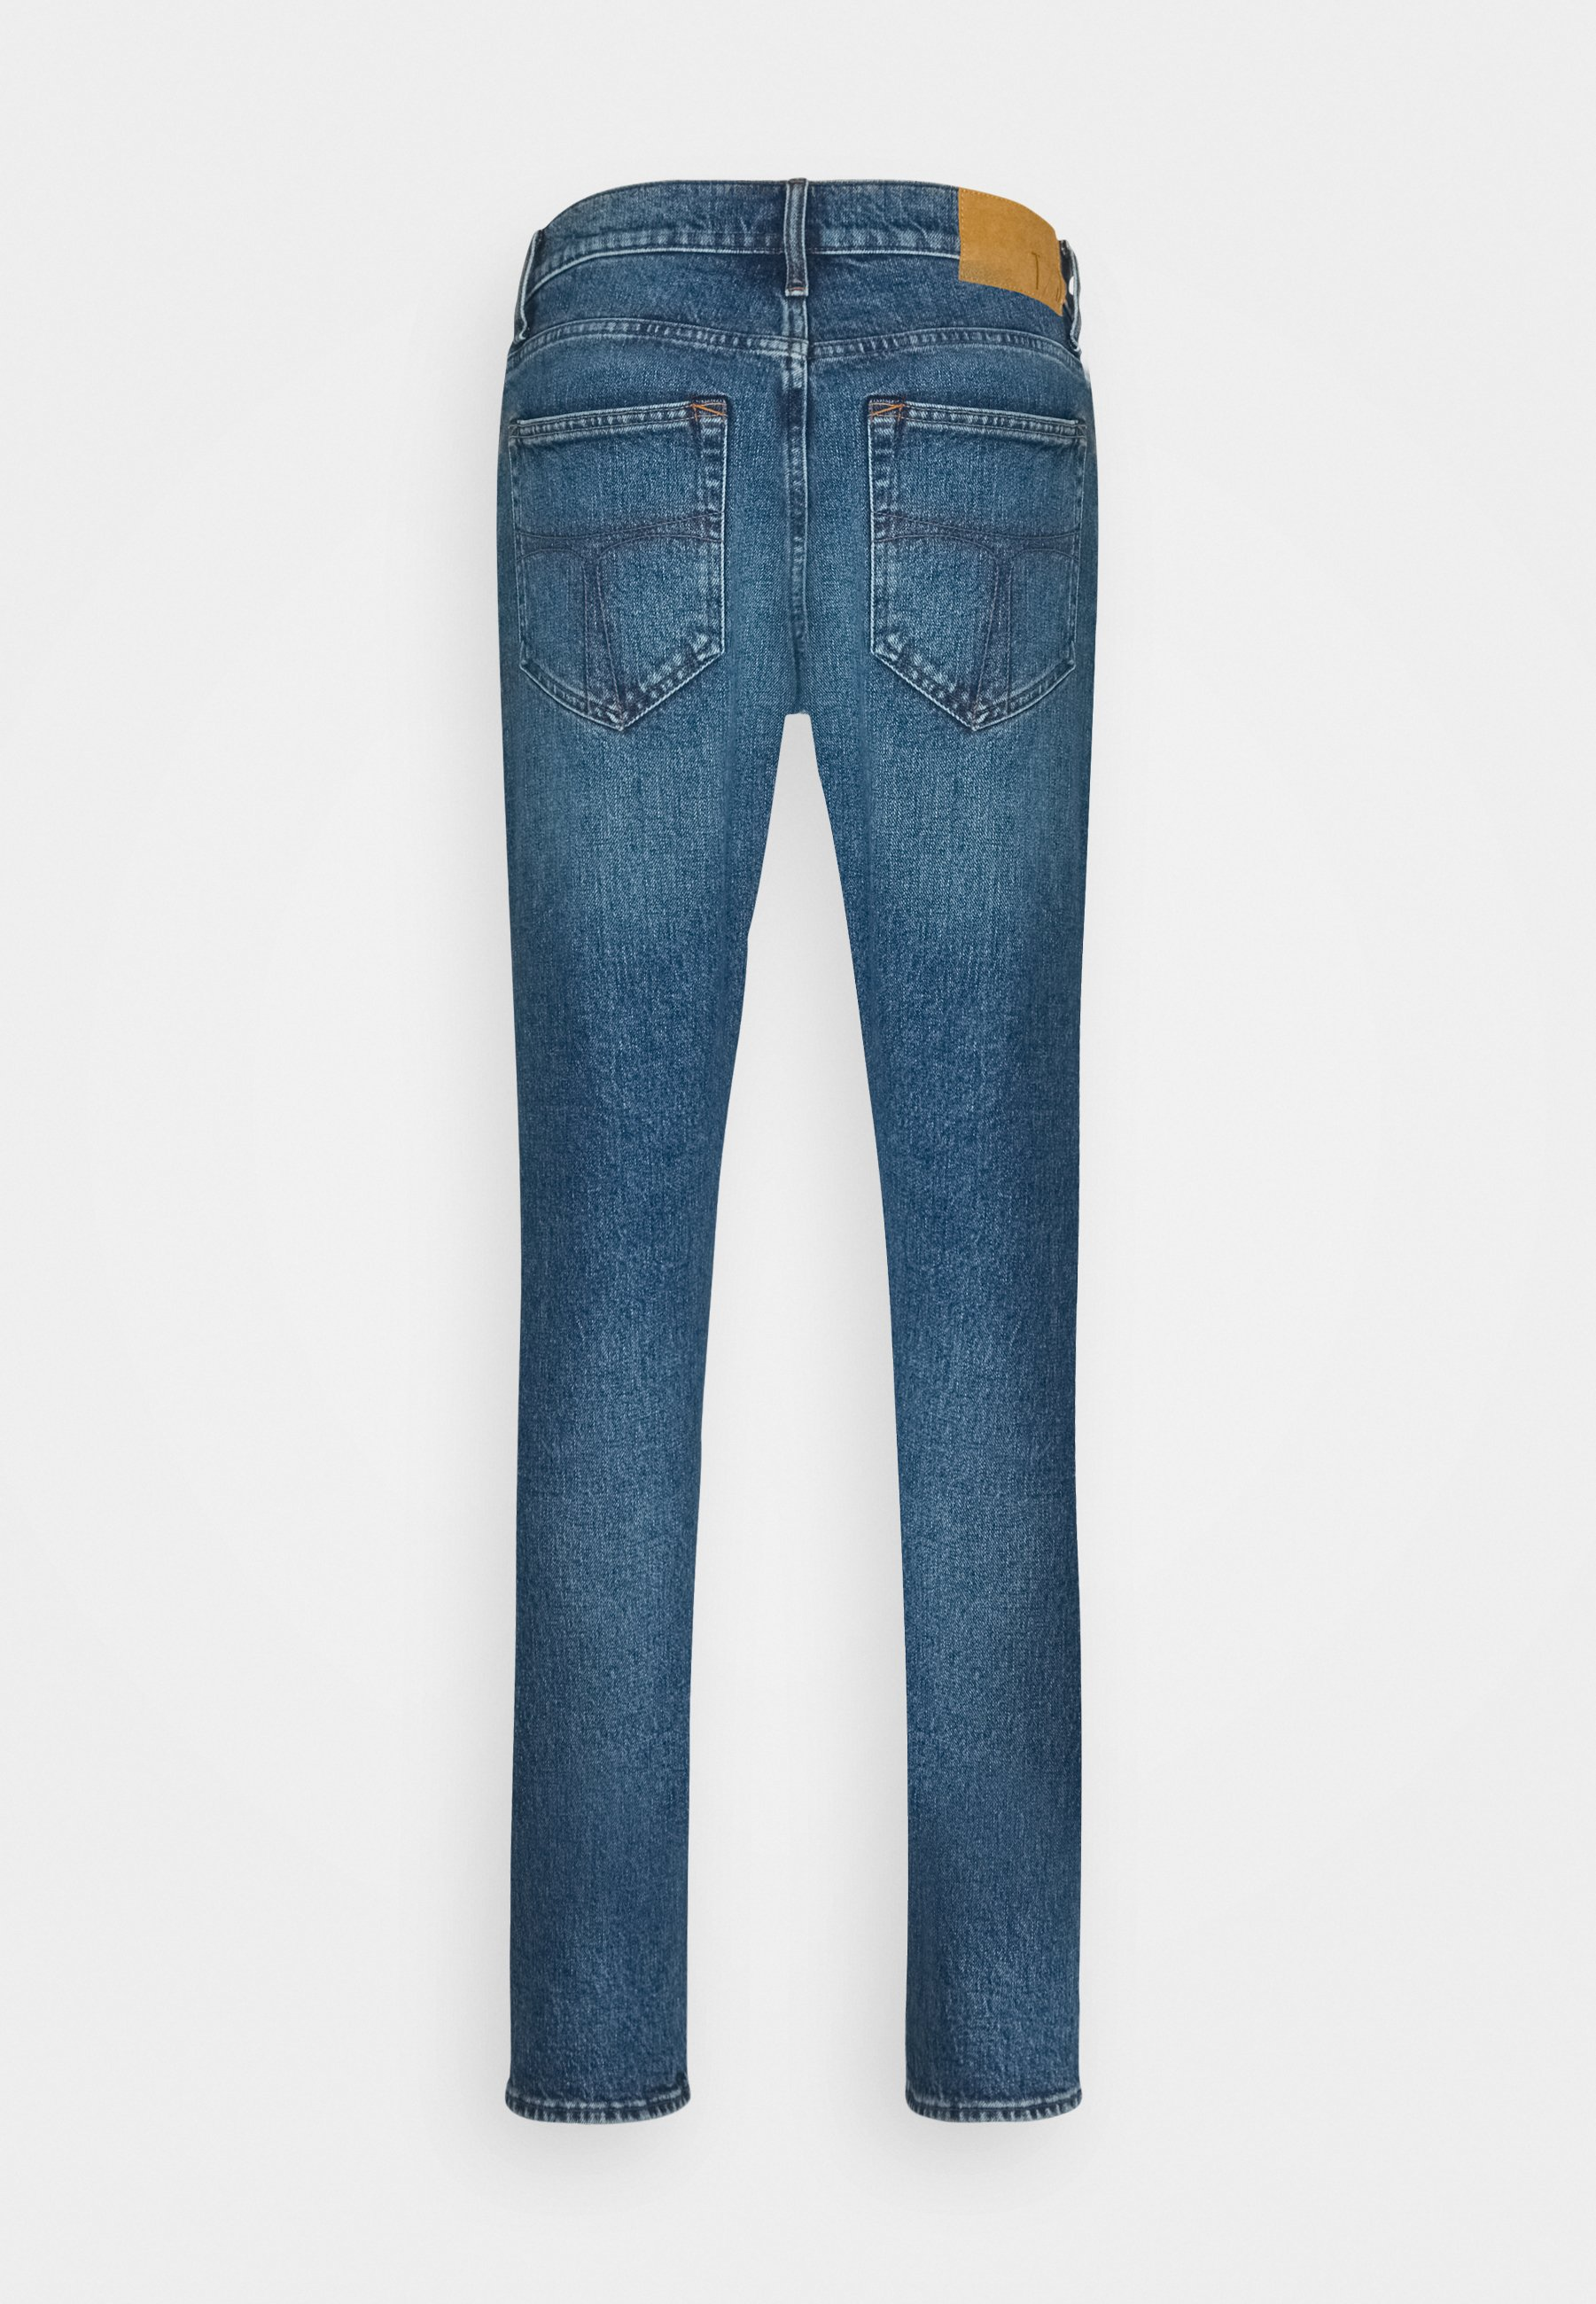 Tiger Of Sweden Jeans Pistolero - Straight Leg Pacer/blå Denim